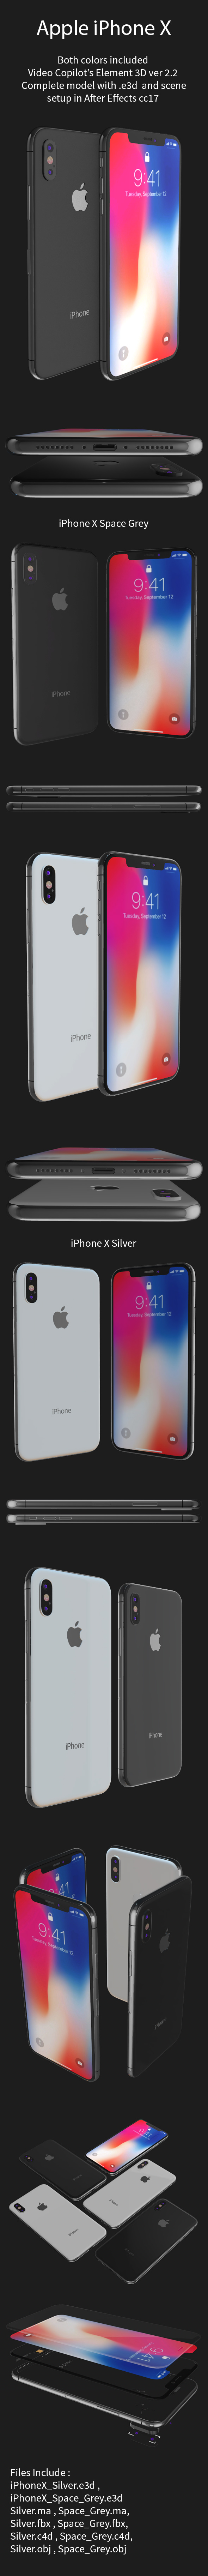 iPhone X 3D | Cinema 4D + Element 3D - 3DOcean Item for Sale